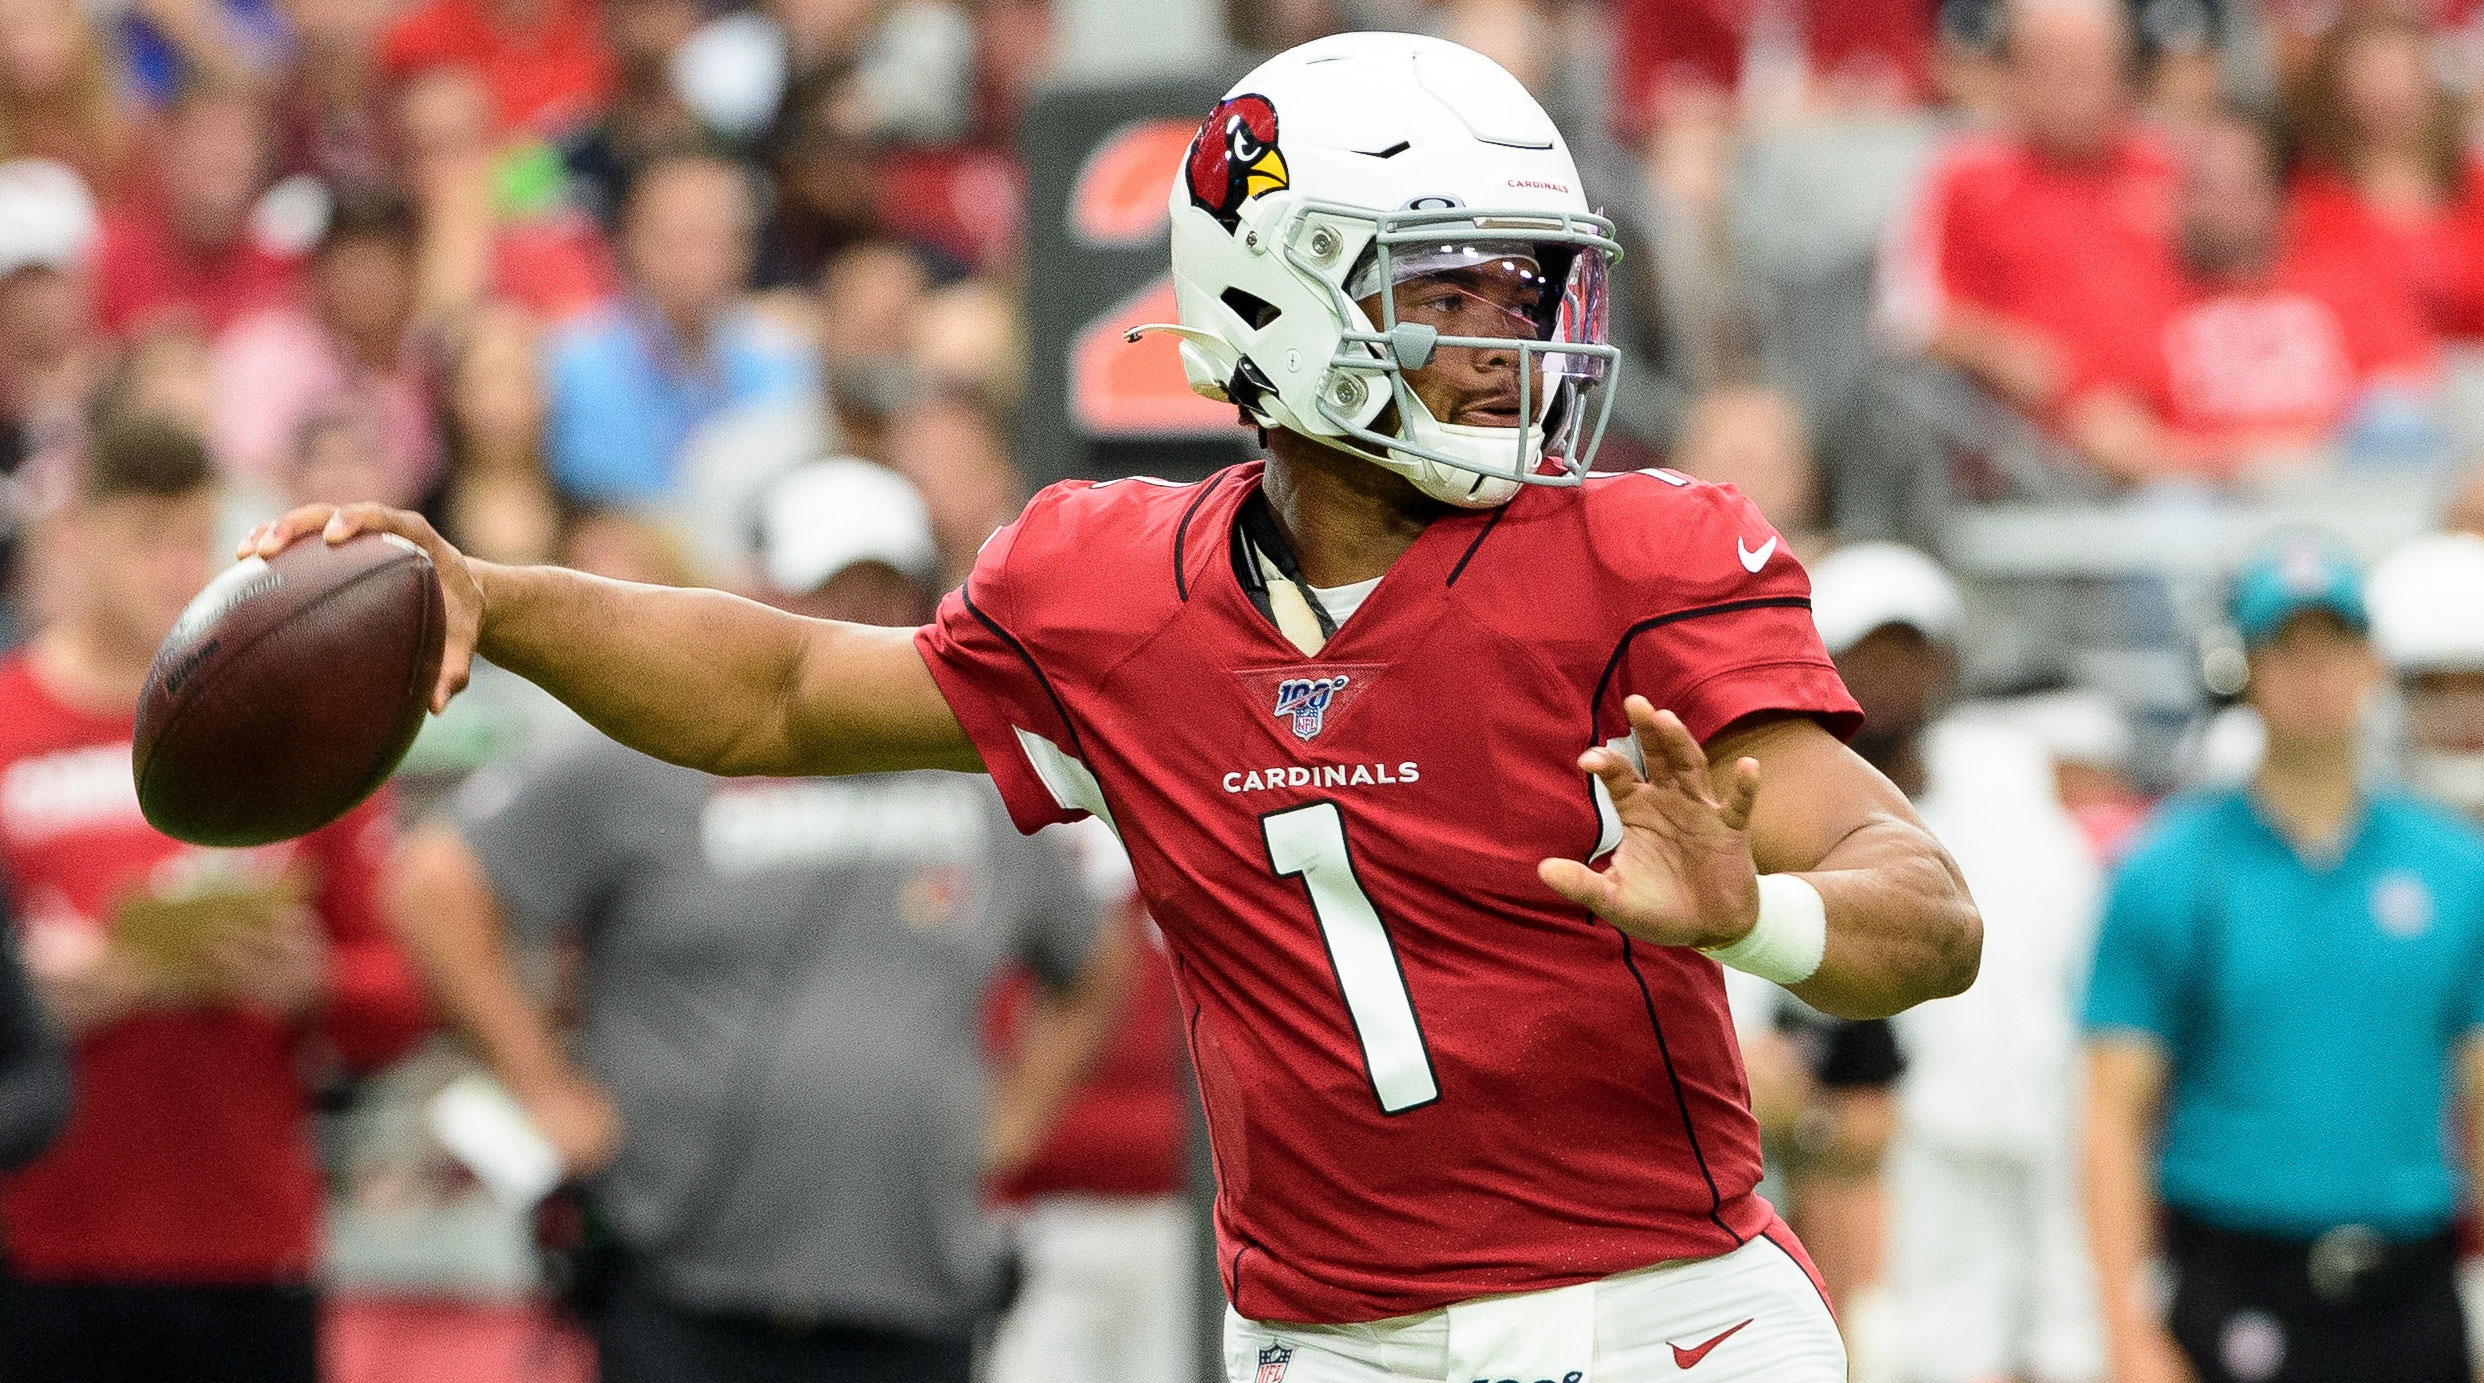 Kyler Murray throwing the football for the Cardinals.